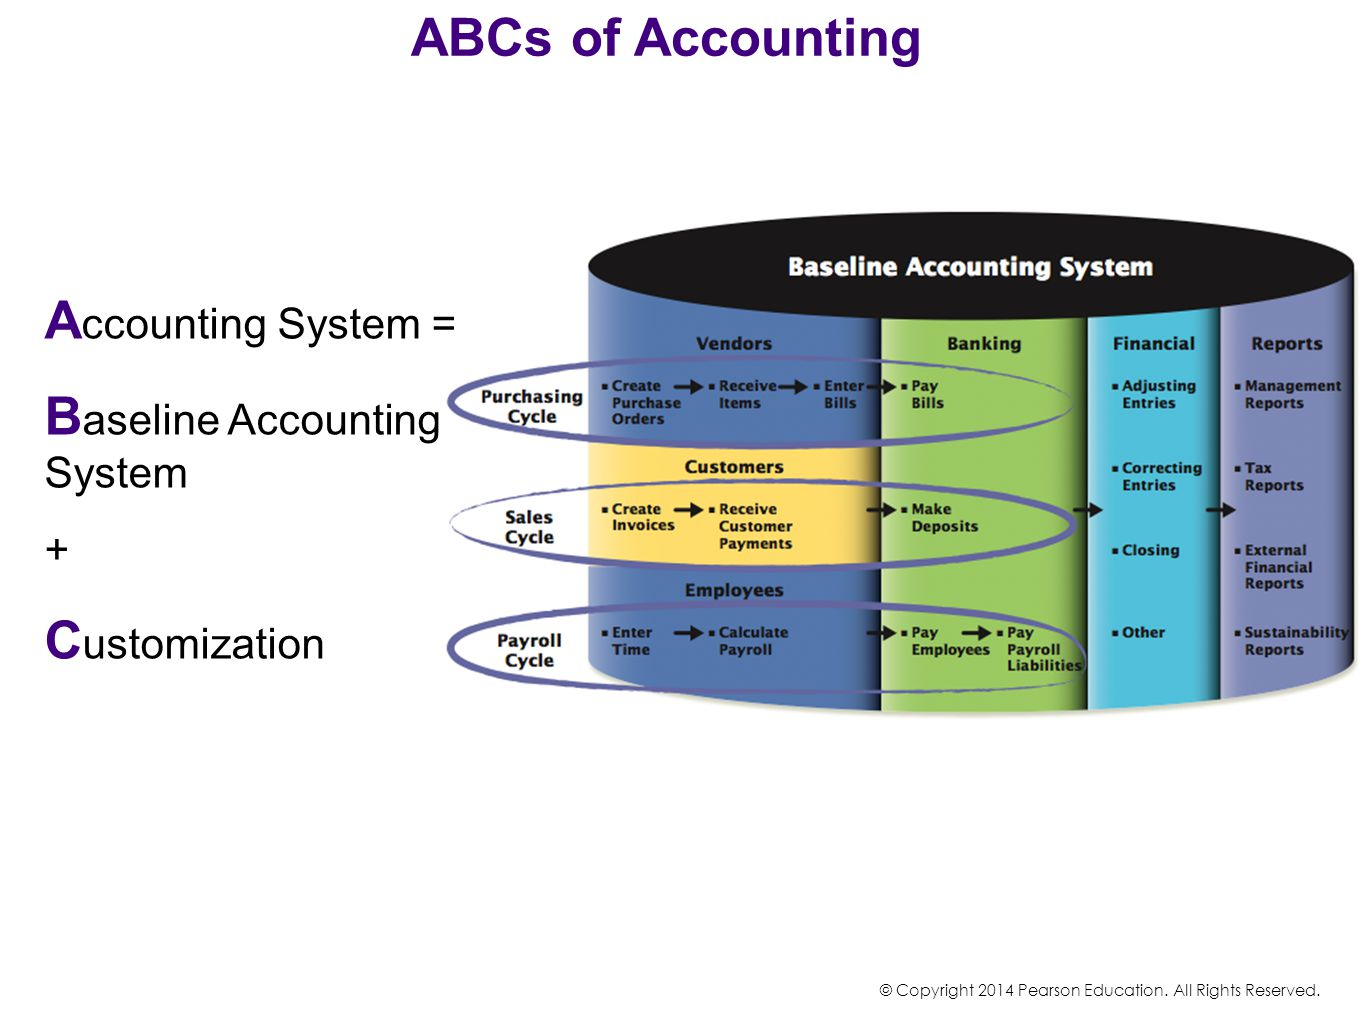 ABCs of Accounting A ccounting System = B aseline Accounting System + C ustomization